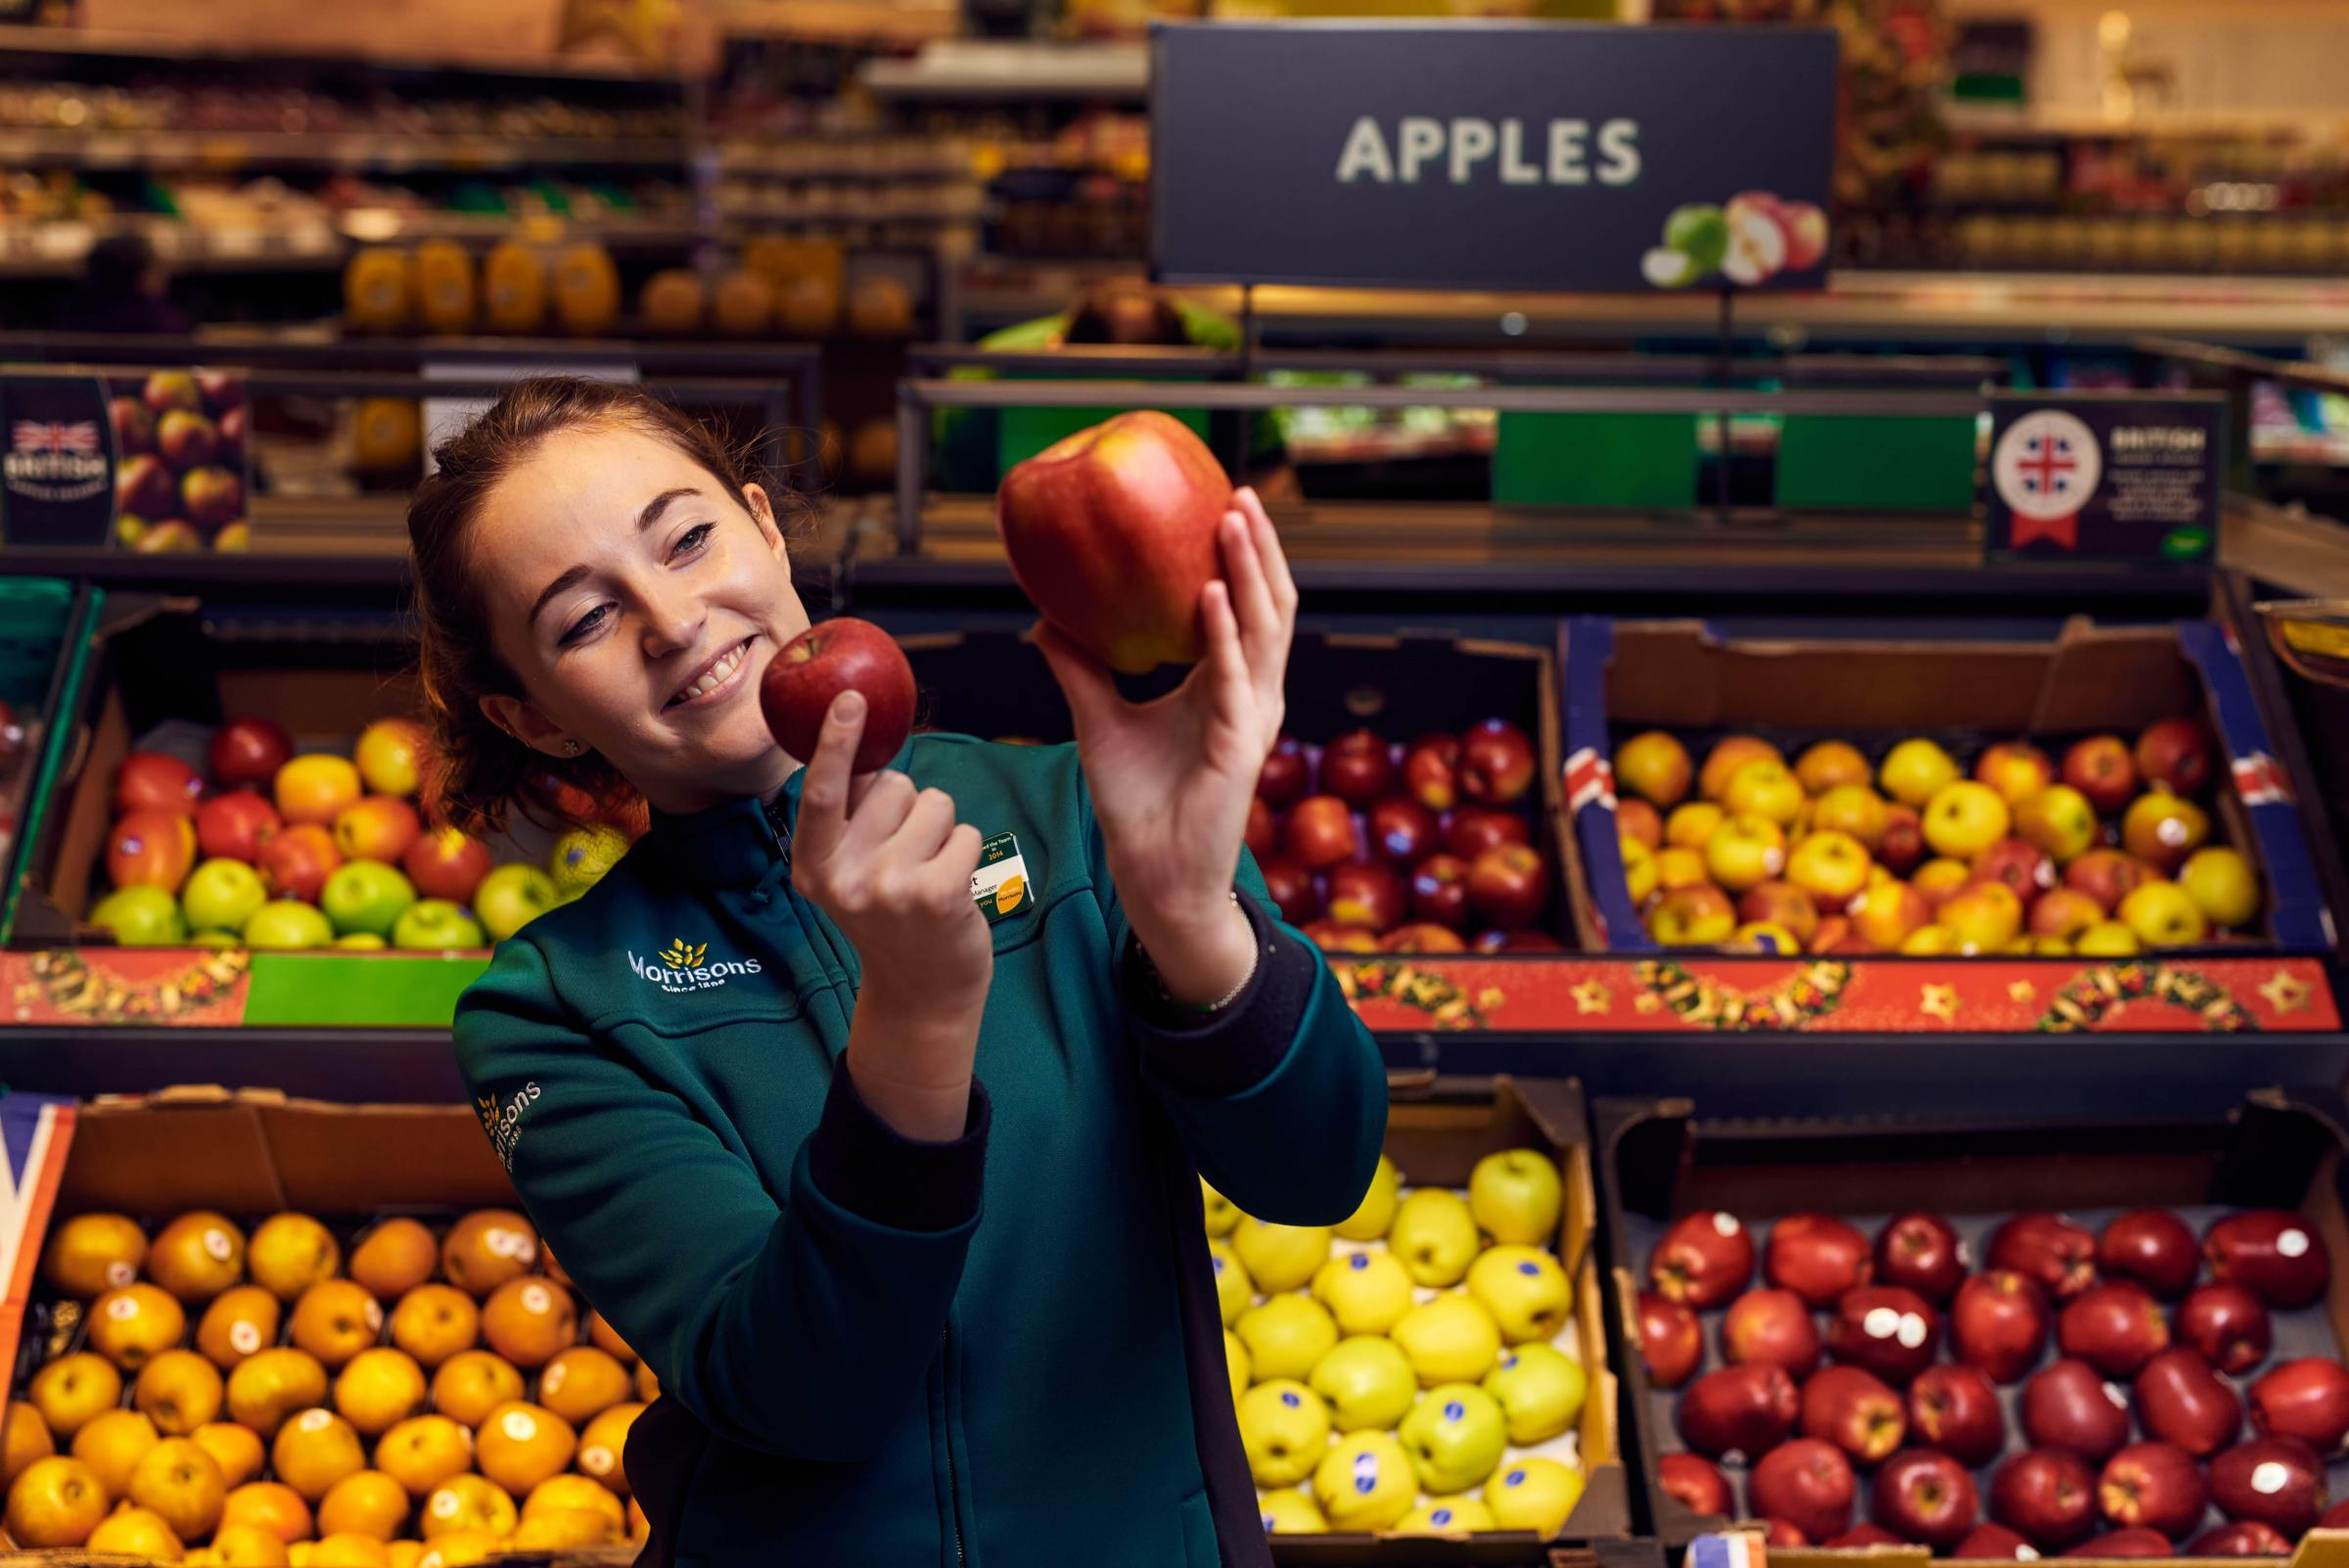 Morrisons is selling supersized Braeburn apples after unusual weather conditions in spring produced a crop of giants.